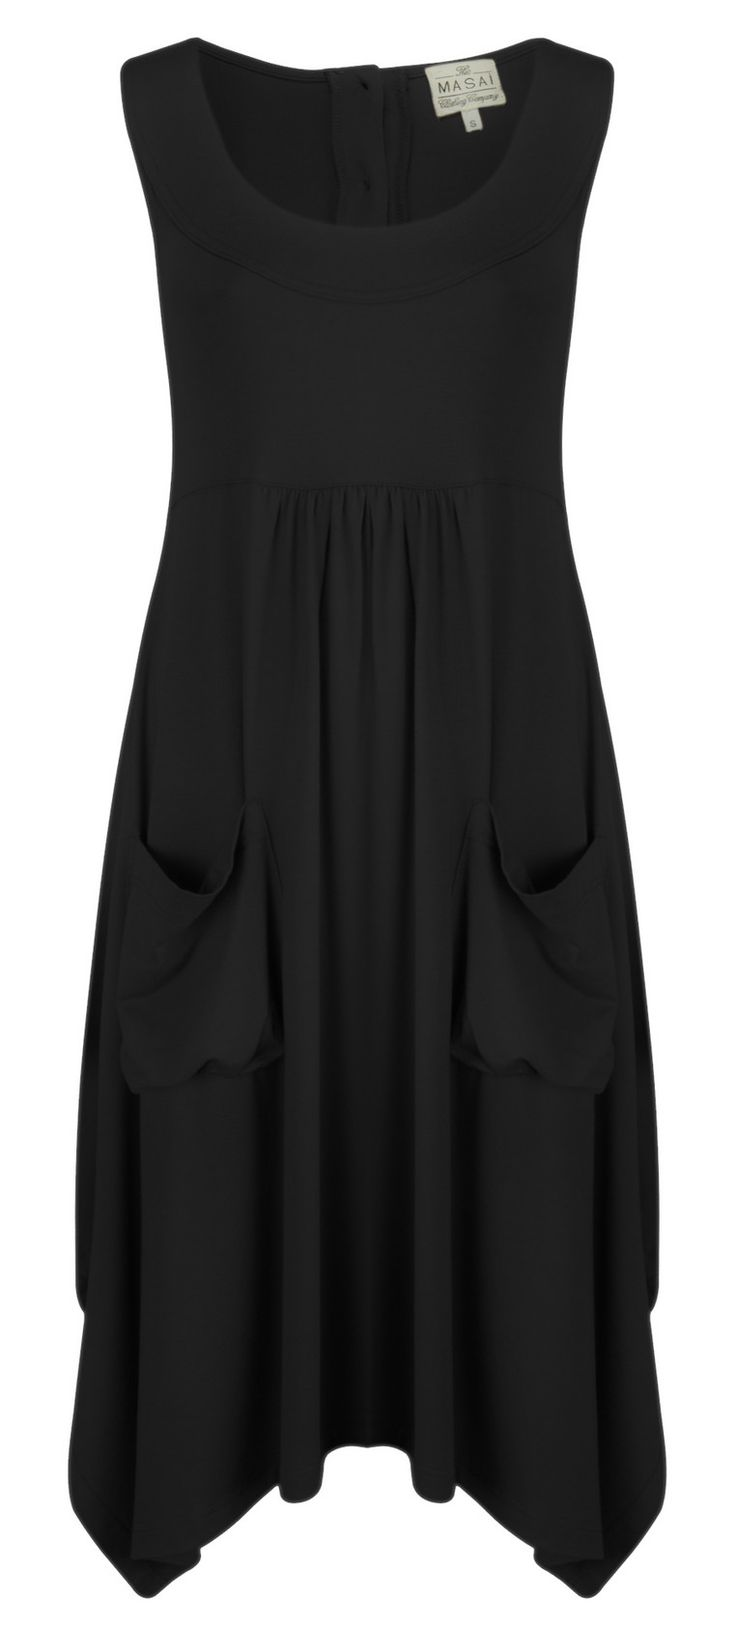 Masai Clothing Orinda Wide Bottom Dress (Black) at Gemini Woman I love dresses with flow and POCKETS